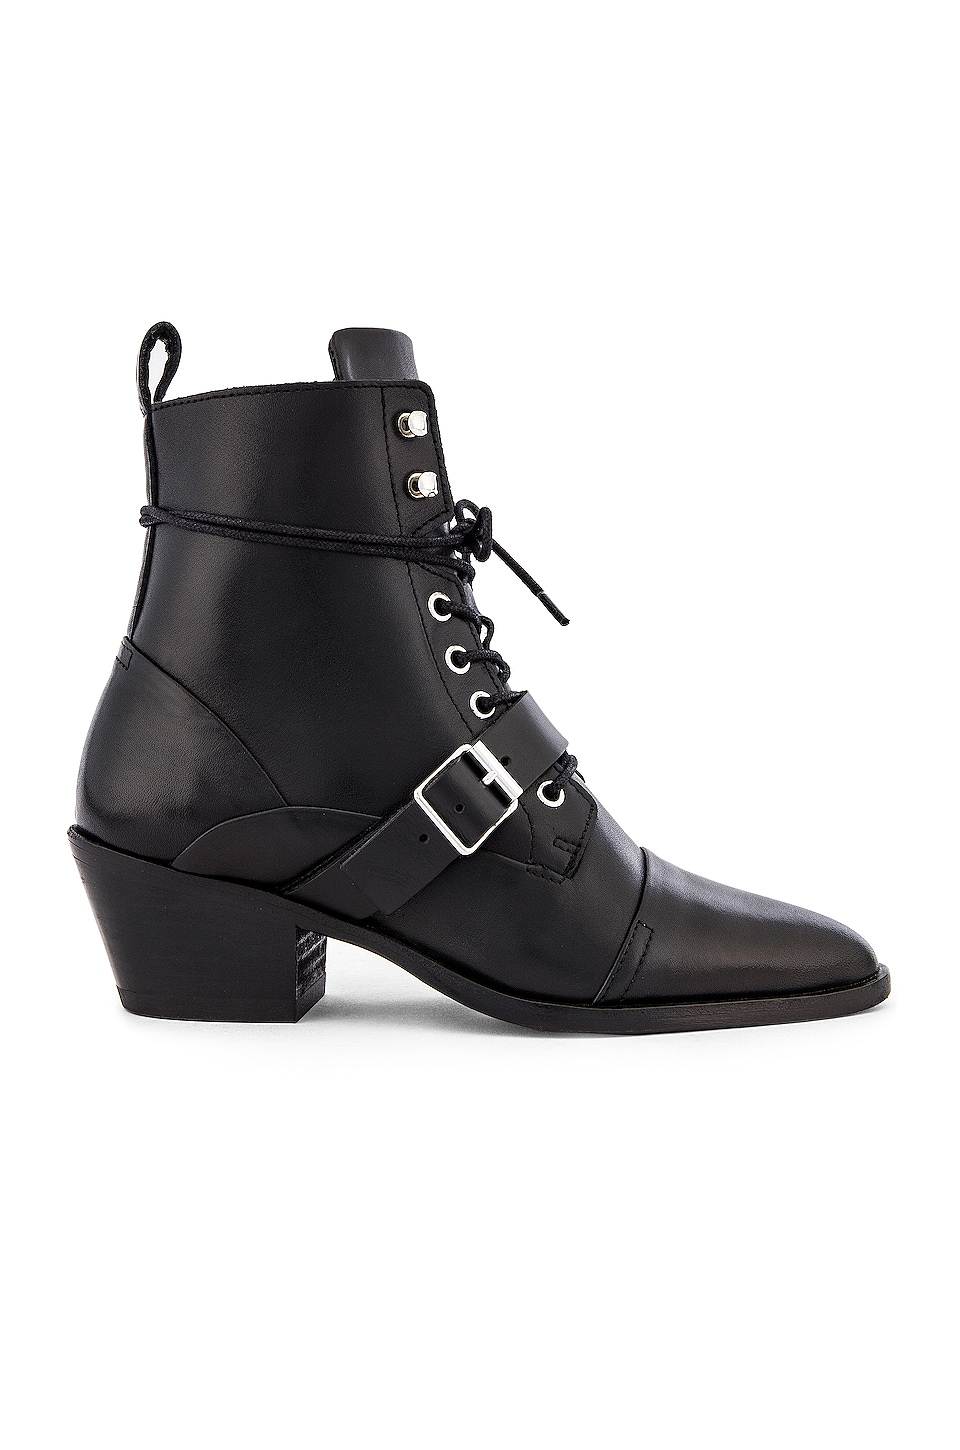 ALLSAINTS Katy Bootie in Black